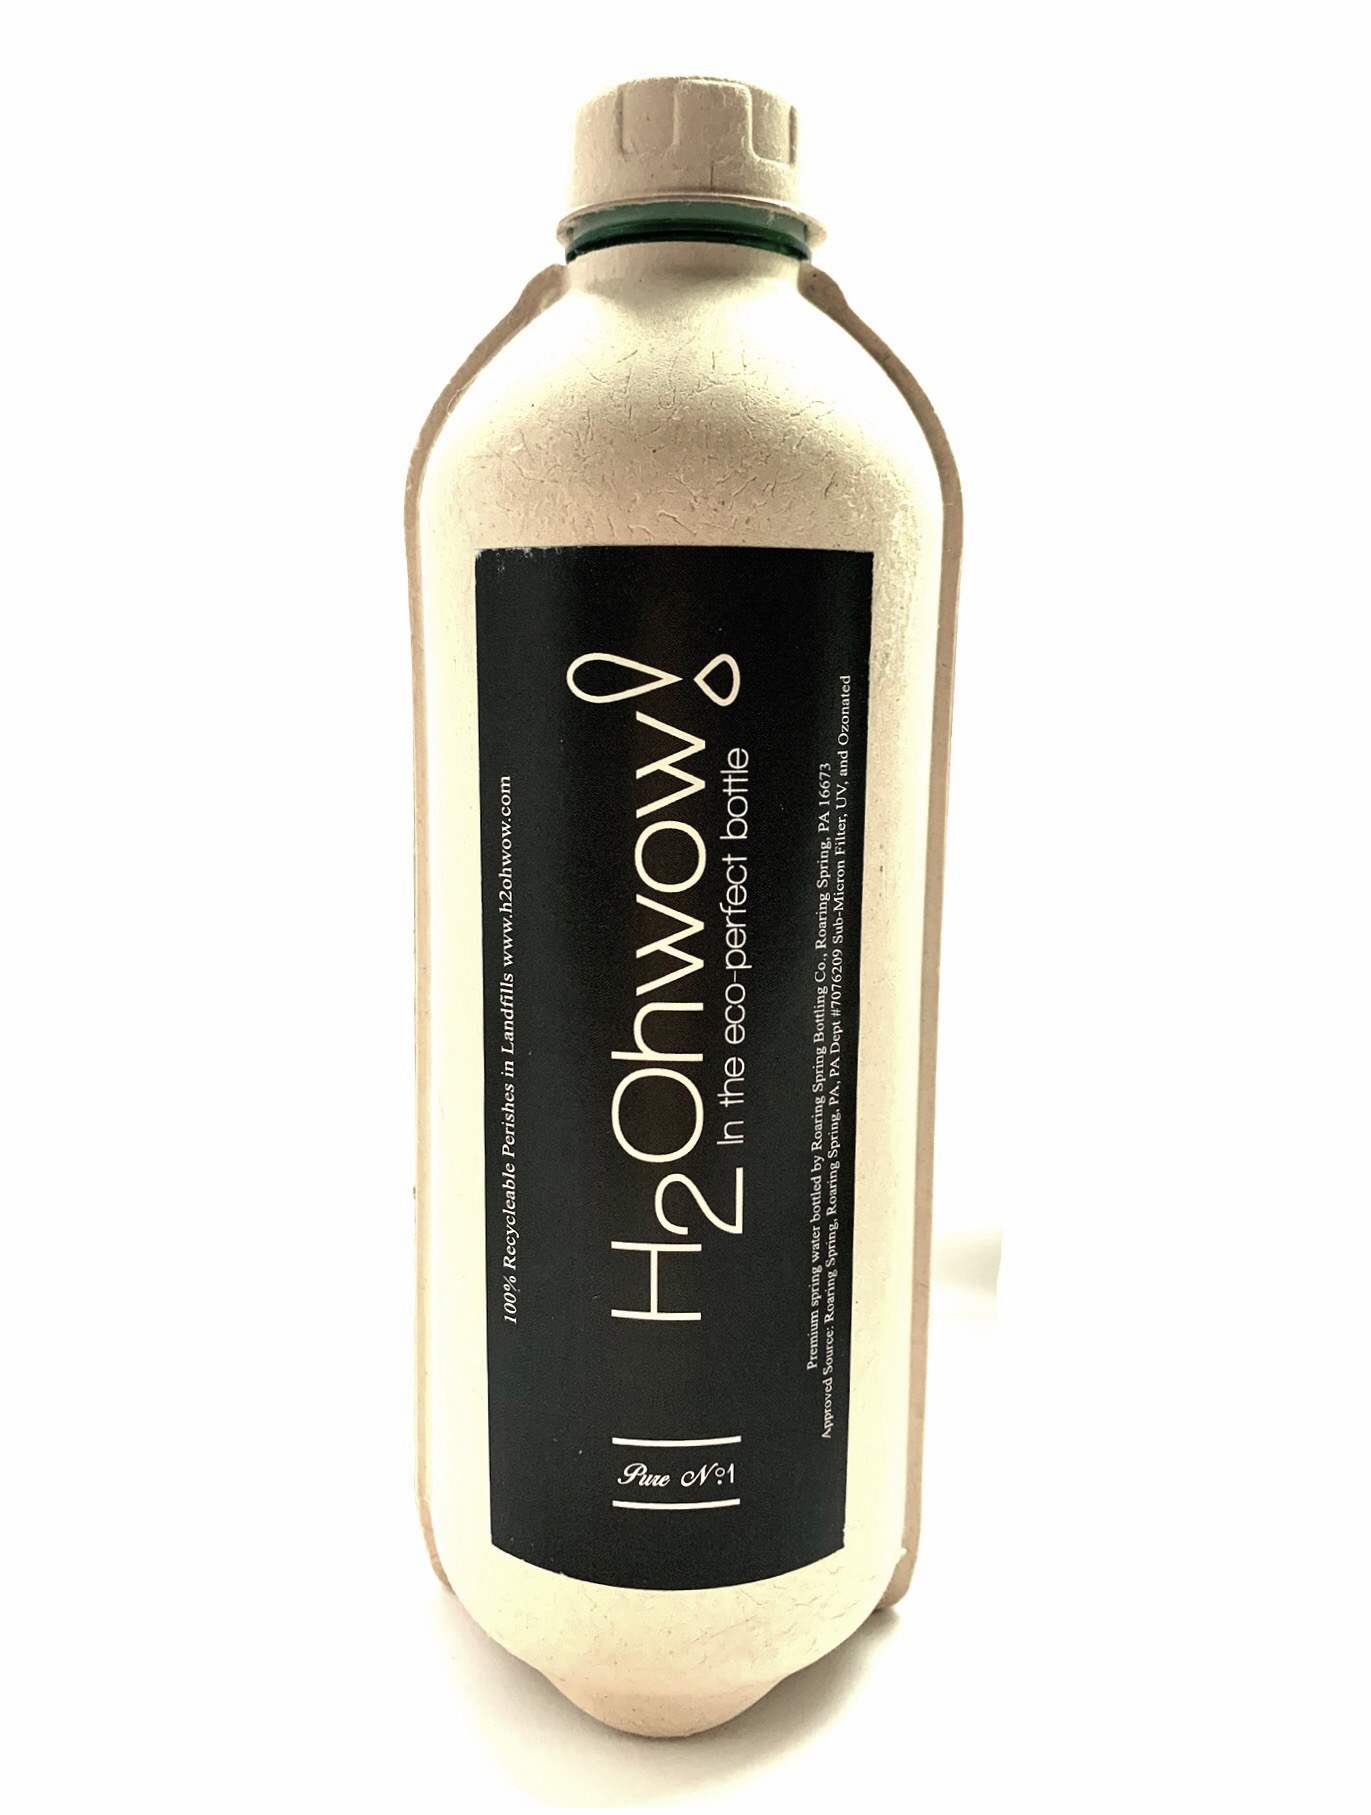 H₂Ohwow! by Libre Un. Great water in a perishable bottle. The eco-perfect way to drink bottled water on the go.